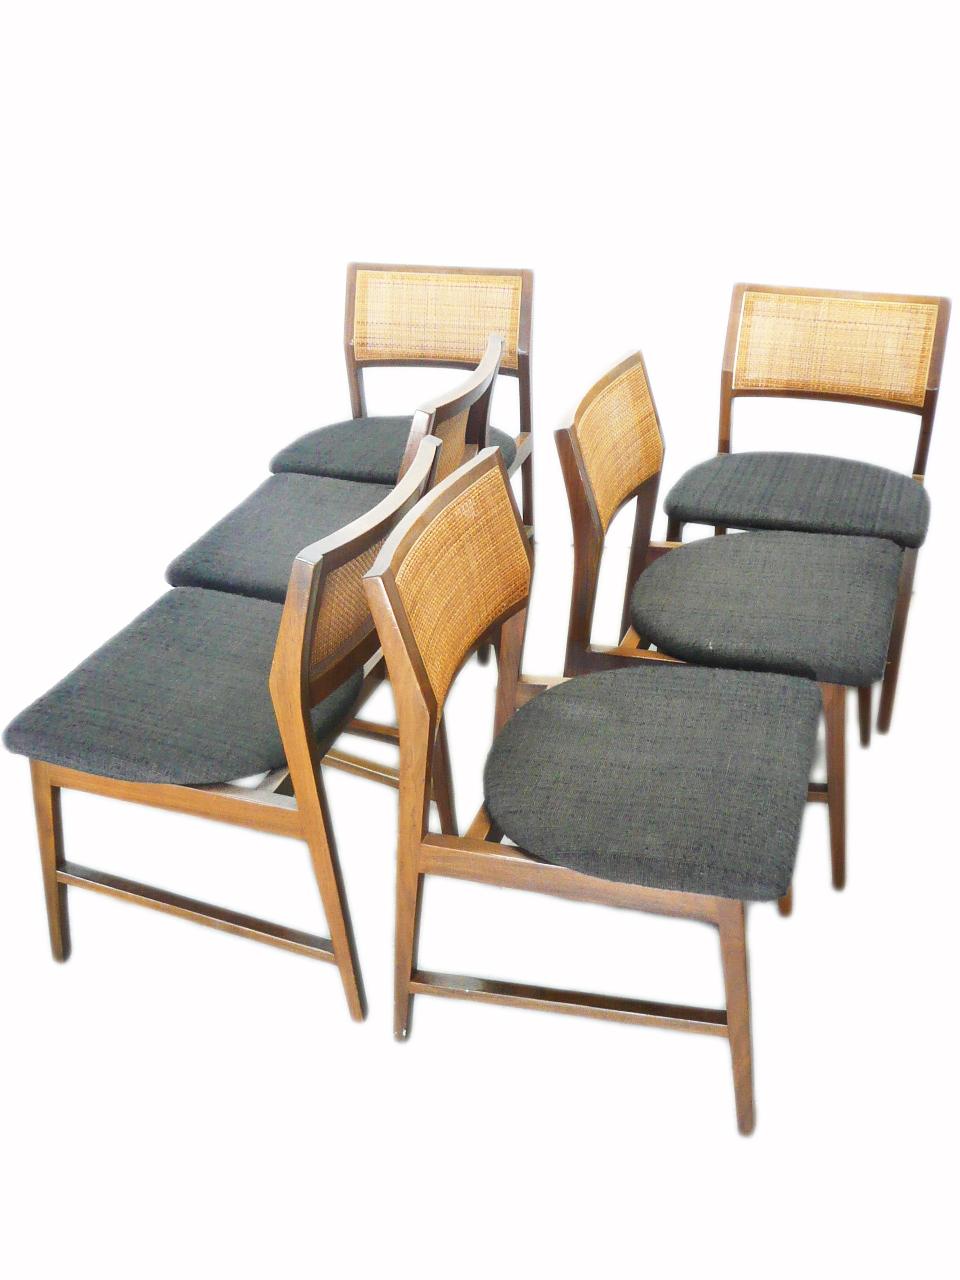 mid century modern cane barrel chairs straight back chair with arms modern, century, danish, vintage furniture shop, used, restoration, repair - denver ...